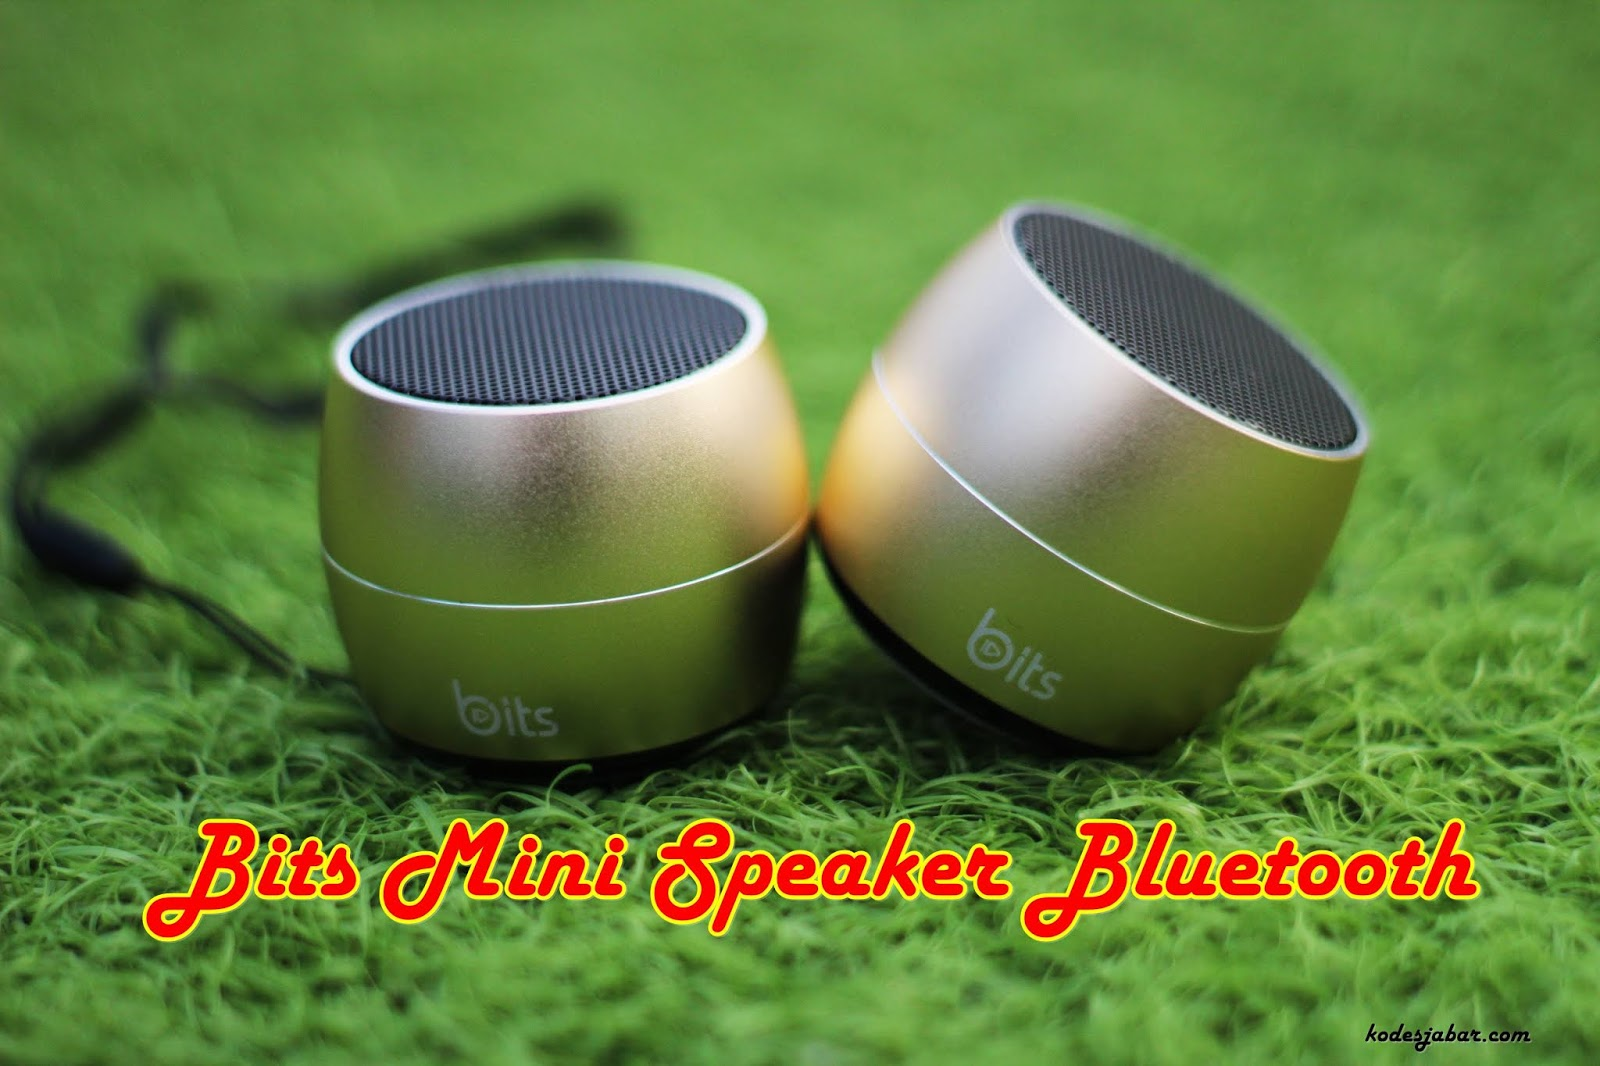 Bits, Mini Speaker Bluetooth Bersuara Dahsyat